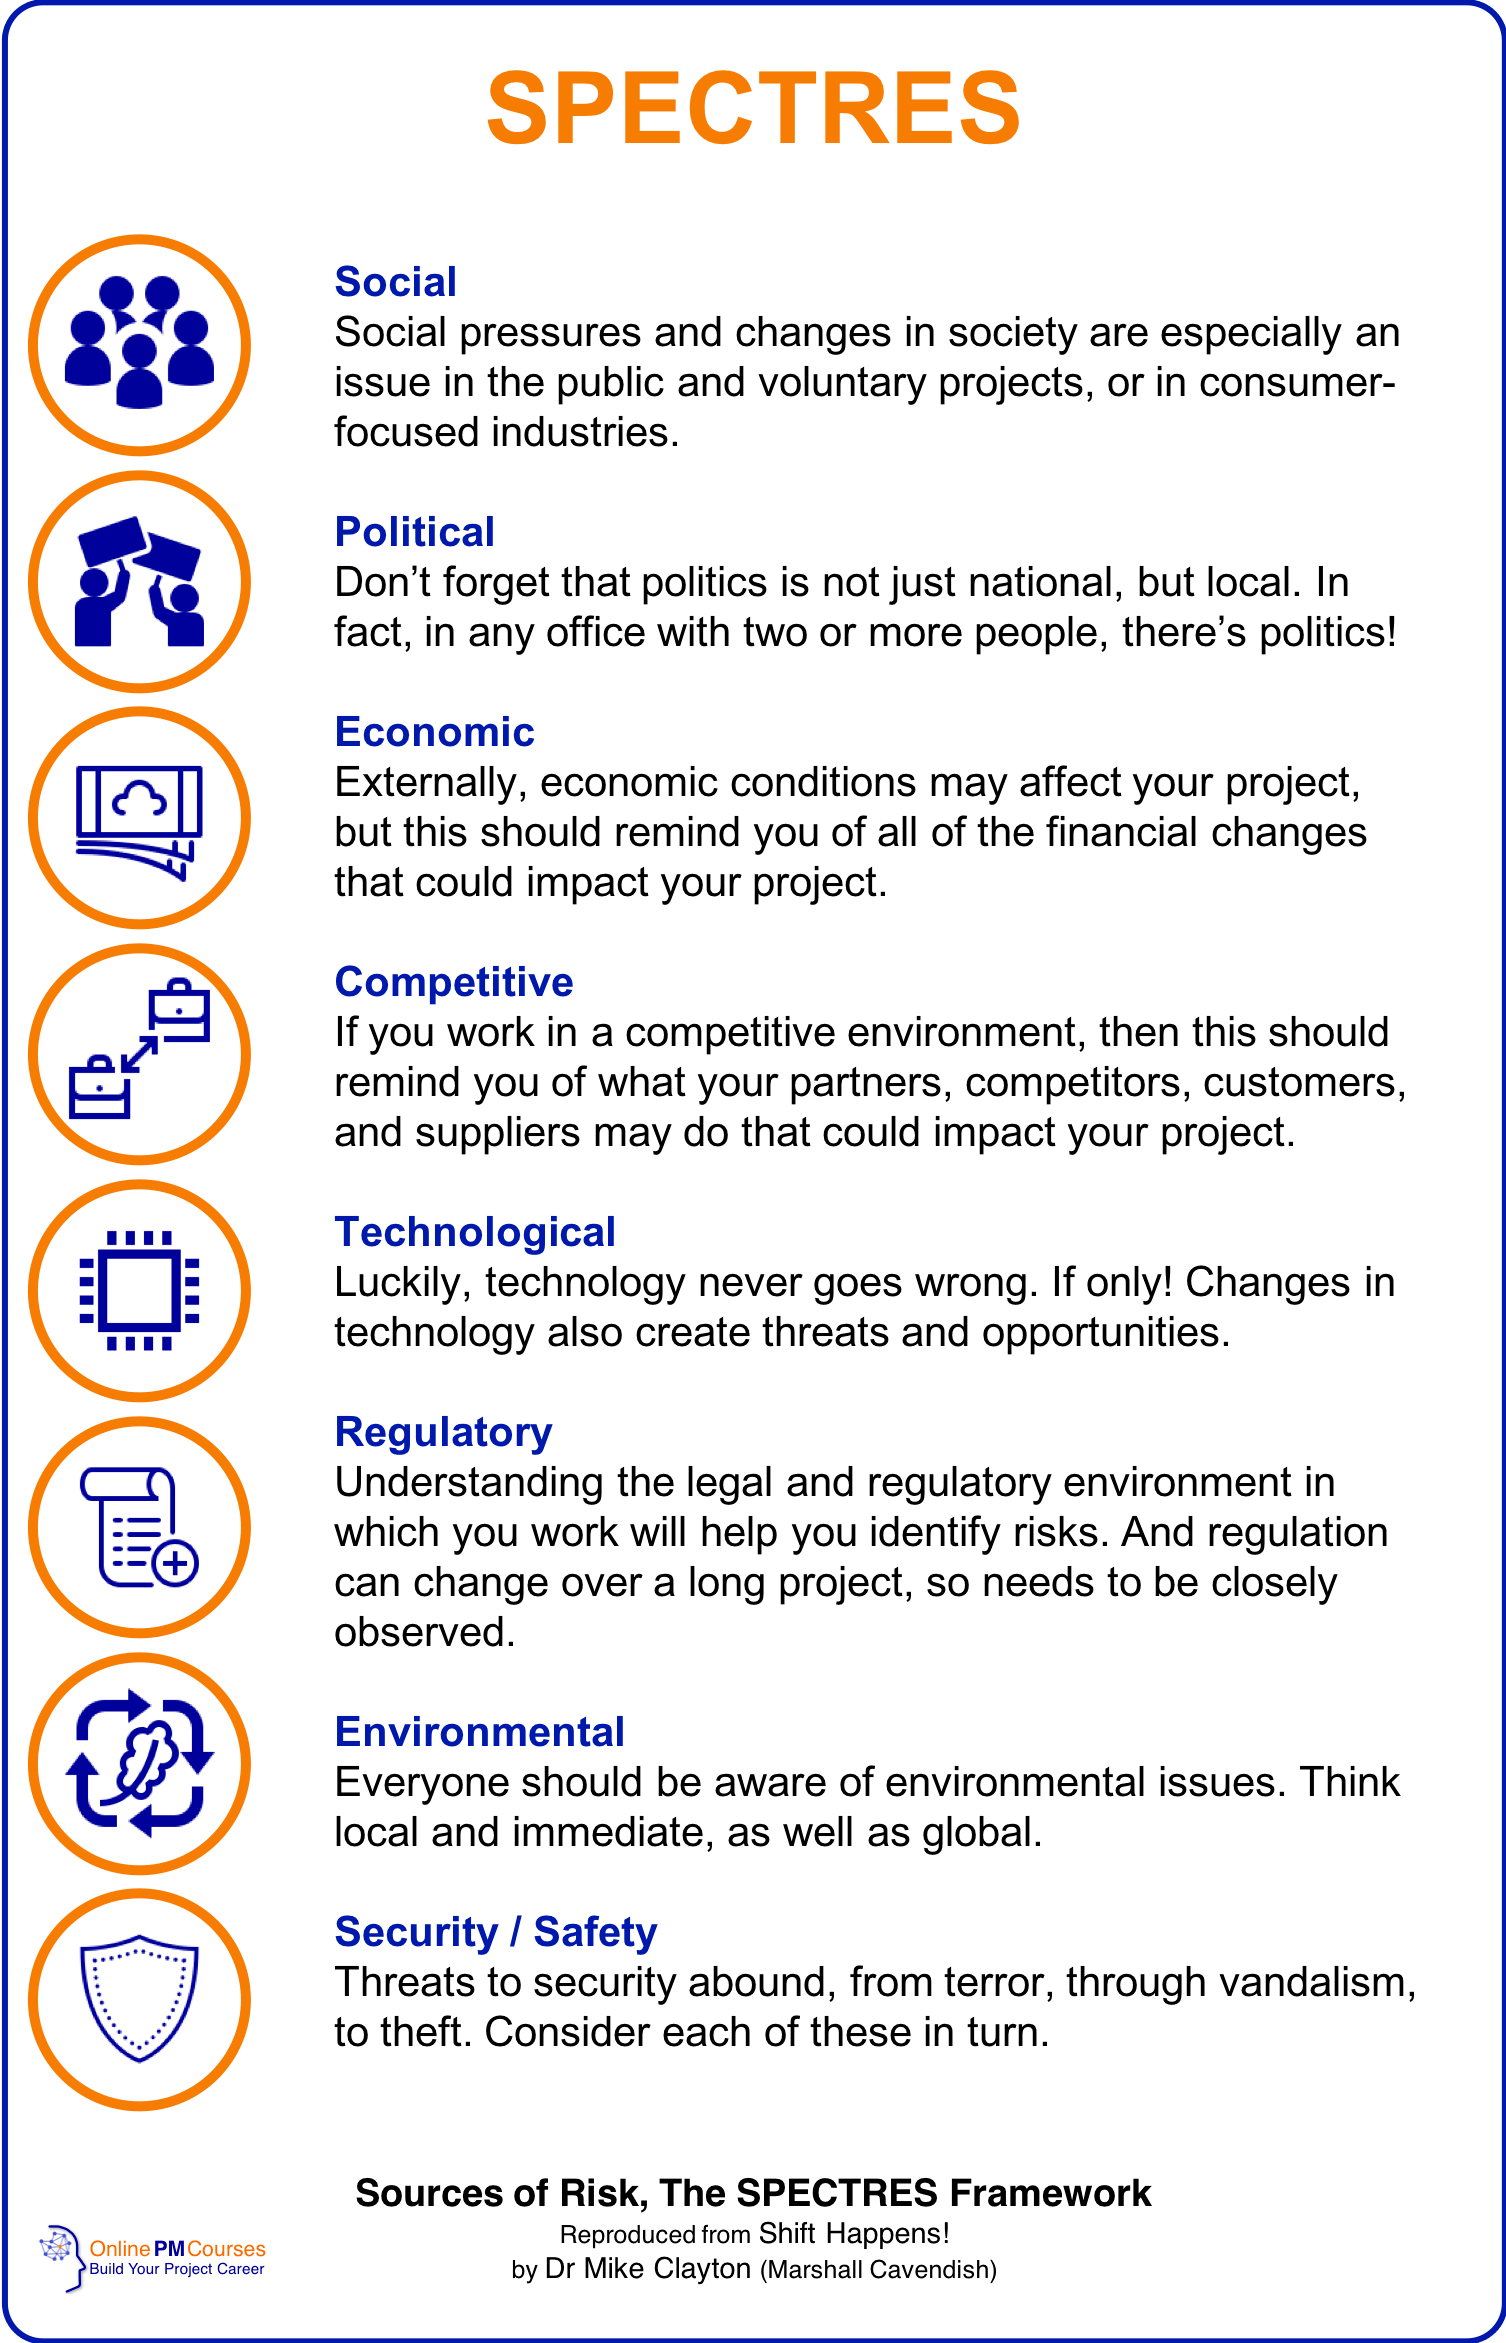 Sources of Risk - The SPECTRES Framework